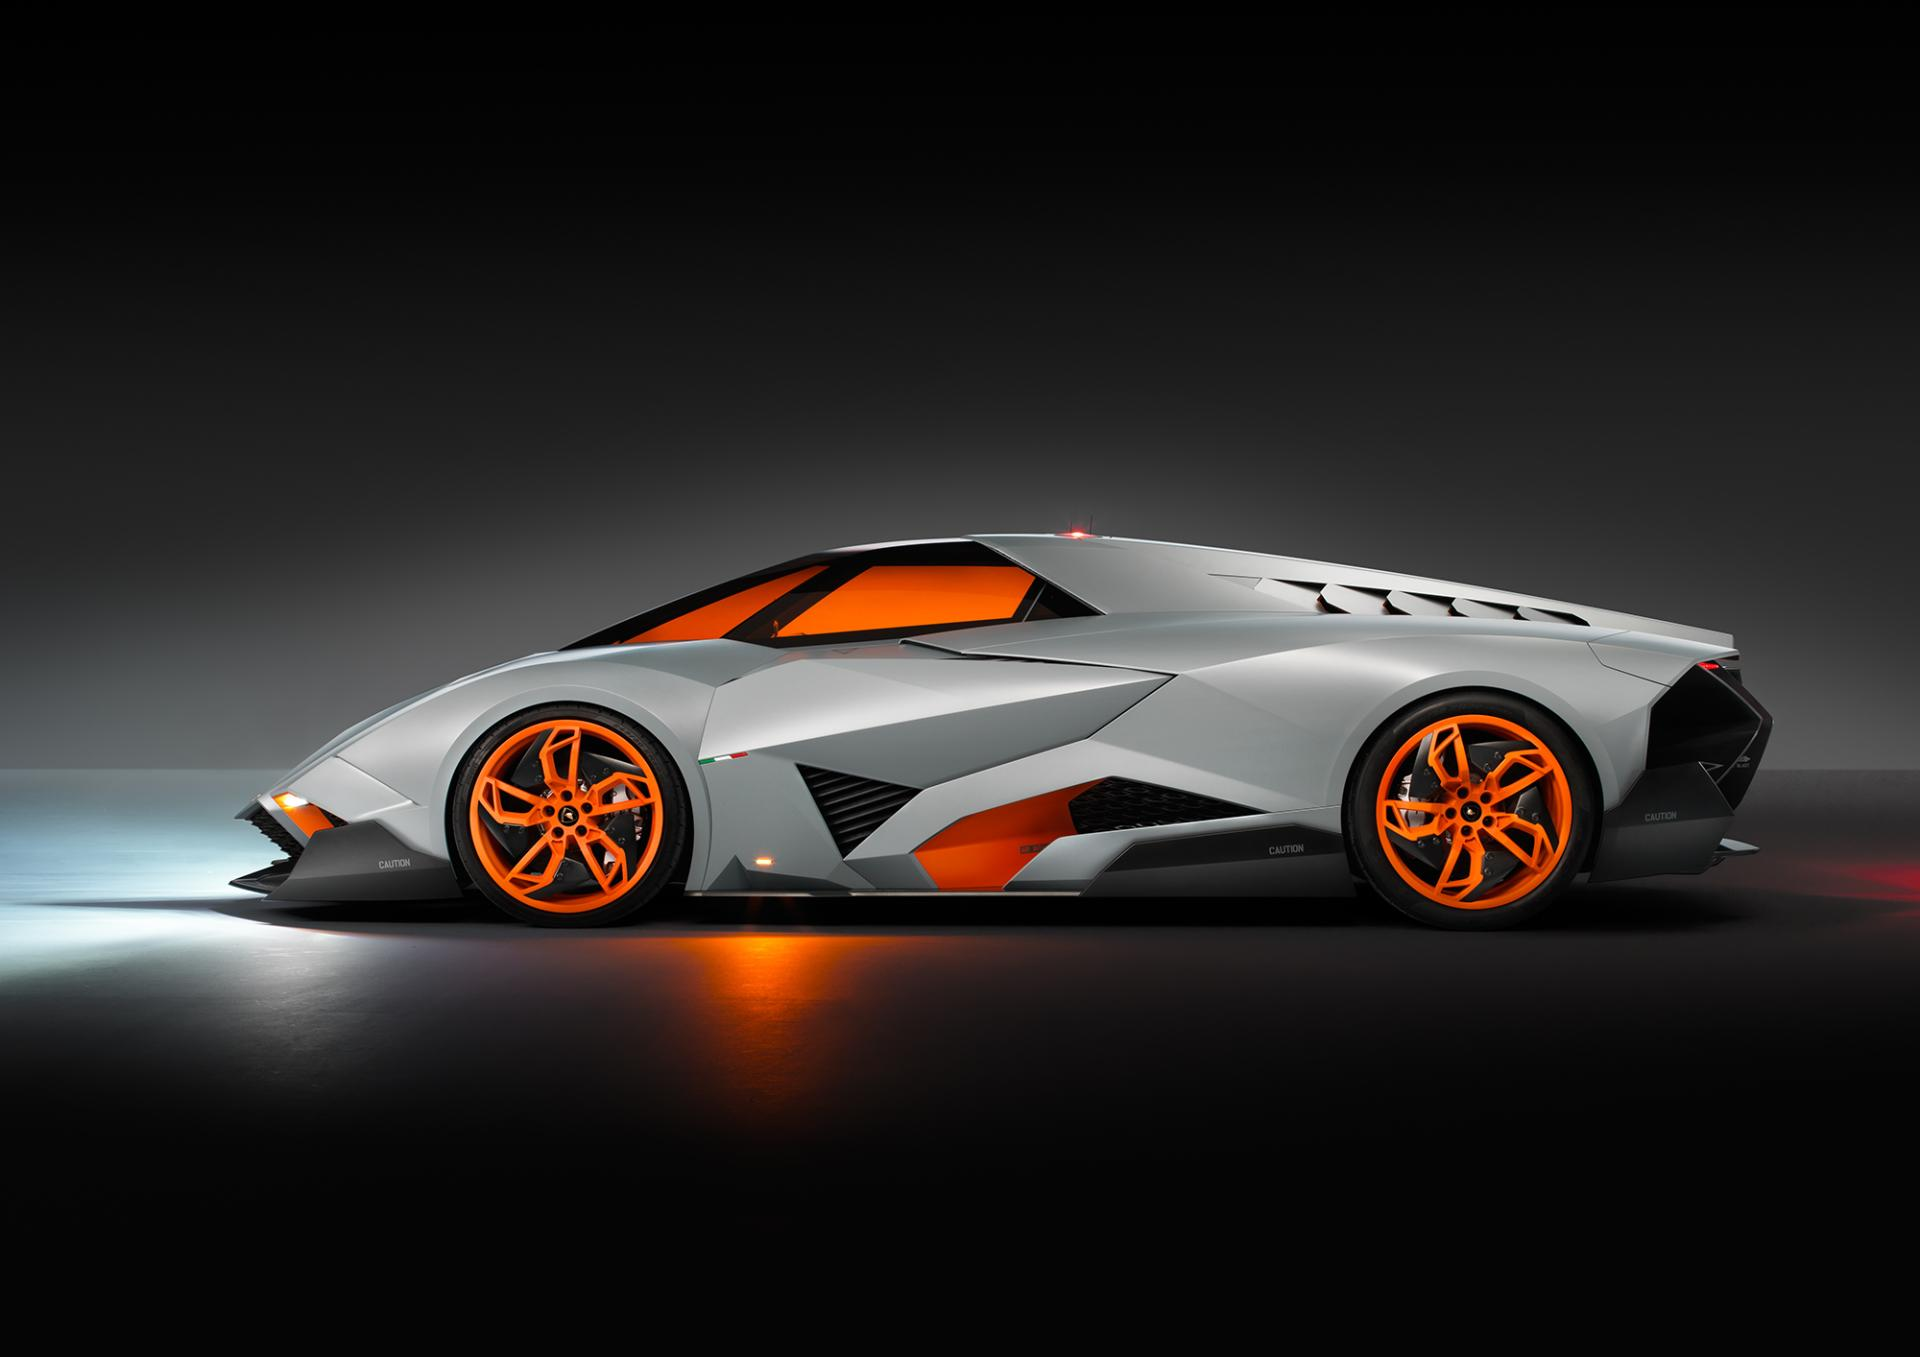 2013 Lamborghini Egoista Concept Technical Specifications